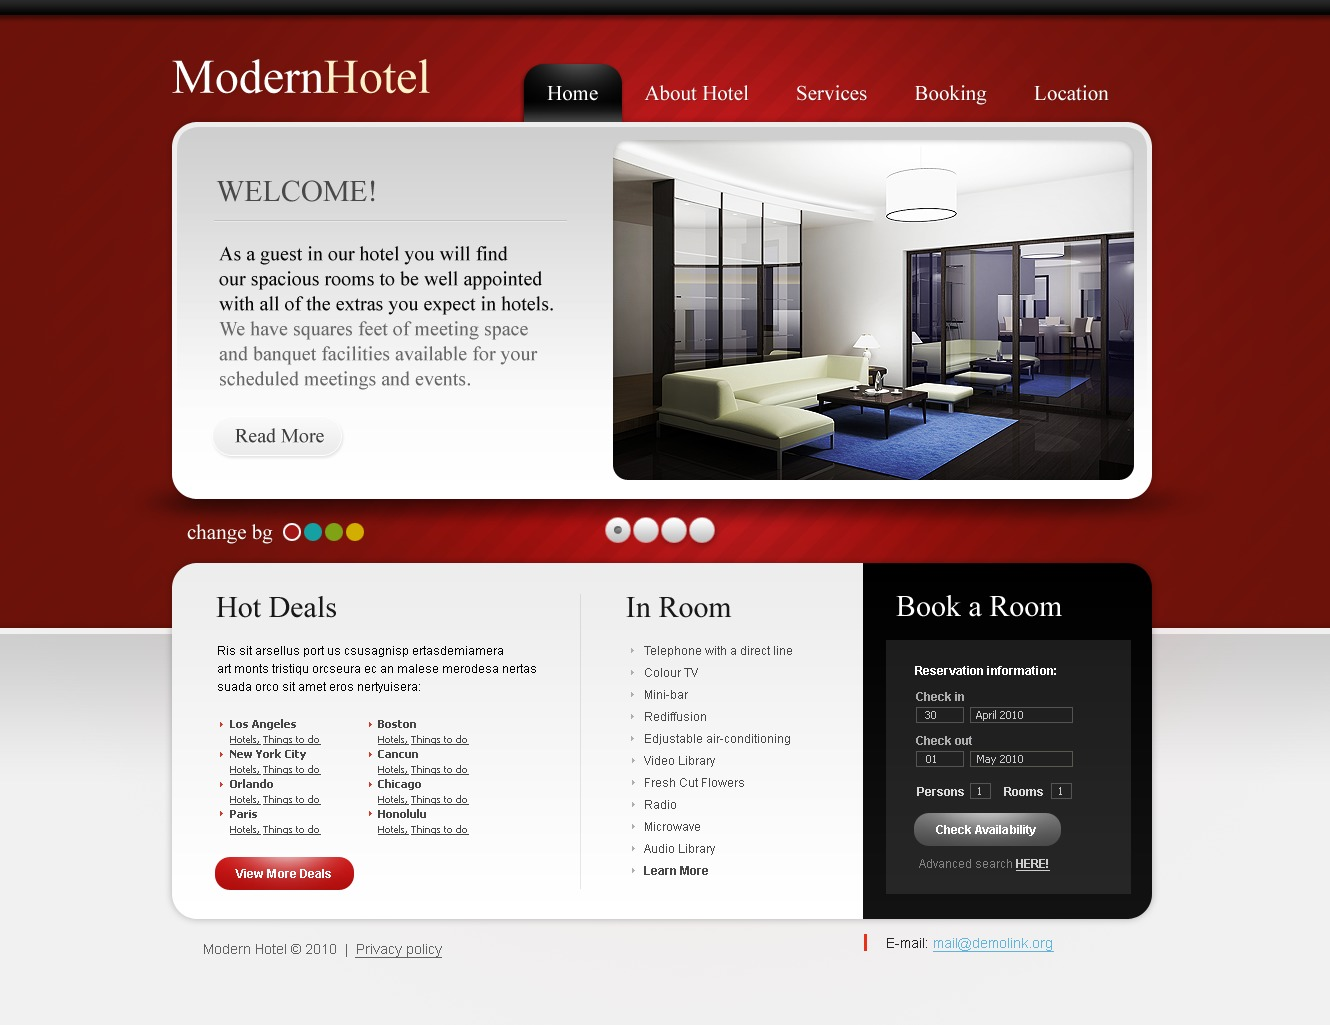 The Modern Hotel PSD Design 54477, one of the best PSD templates of its kind (hotels, wide, jquery), also known as modern hotel PSD template, royal motel PSD template, exotic PSD template, building PSD template, events PSD template, interior PSD template, cozy PSD template, comfortable room PSD template, spacious PSD template, light PSD template, modern rest PSD template, pool PSD template, floor PSD template, stairs PSD template, staff PSD template, reception PSD template, testimonial PSD template, service PSD template, offer PSD template, booking PSD template, reservation PSD template, order PSD template, location PSD template, security PSD template, wedding PSD template, cerem and related with modern hotel, royal motel, exotic, building, events, interior, cozy, comfortable room, spacious, light, modern rest, pool, floor, stairs, staff, reception, testimonial, service, offer, booking, reservation, order, location, security, wedding, cerem, etc.